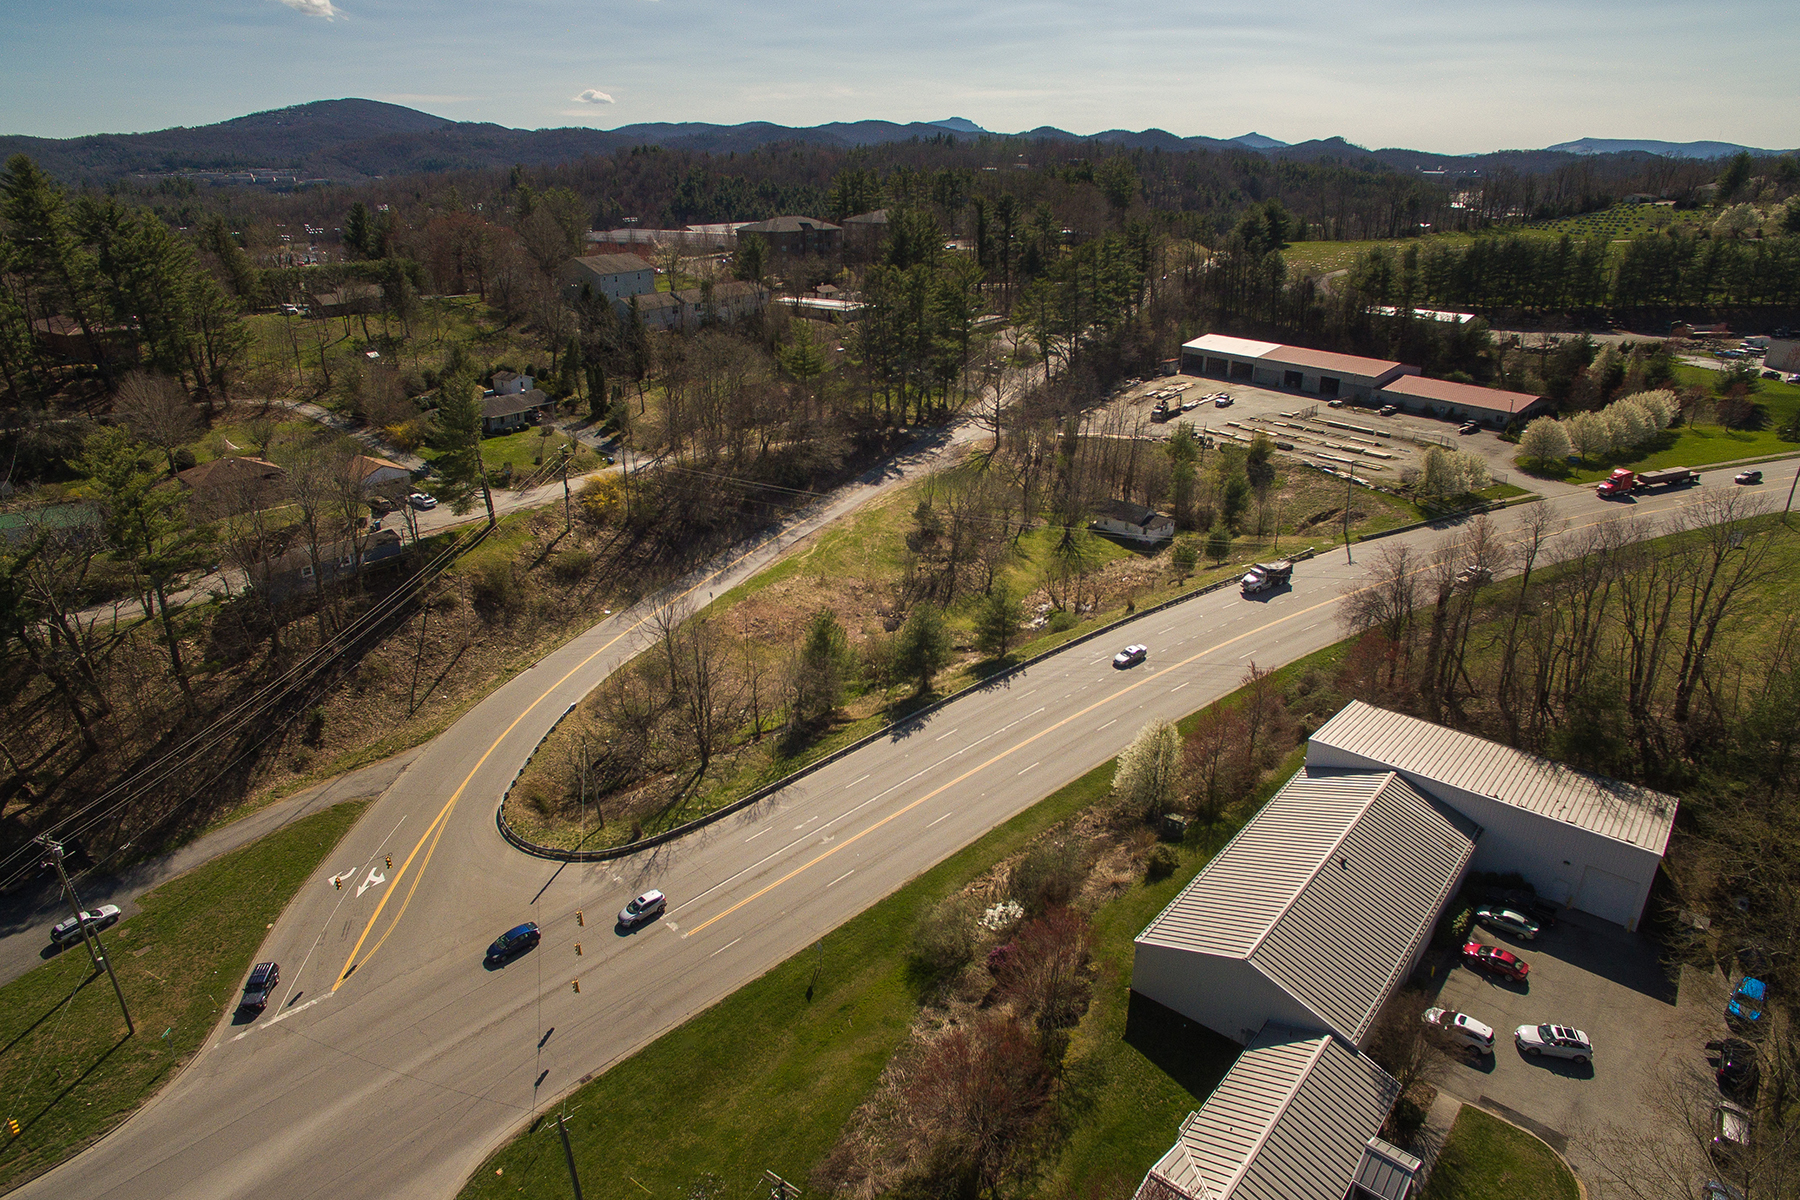 Single Family Home for Active at TBD US 421 TBD S US 421 Hwy Boone, North Carolina 28607 United States